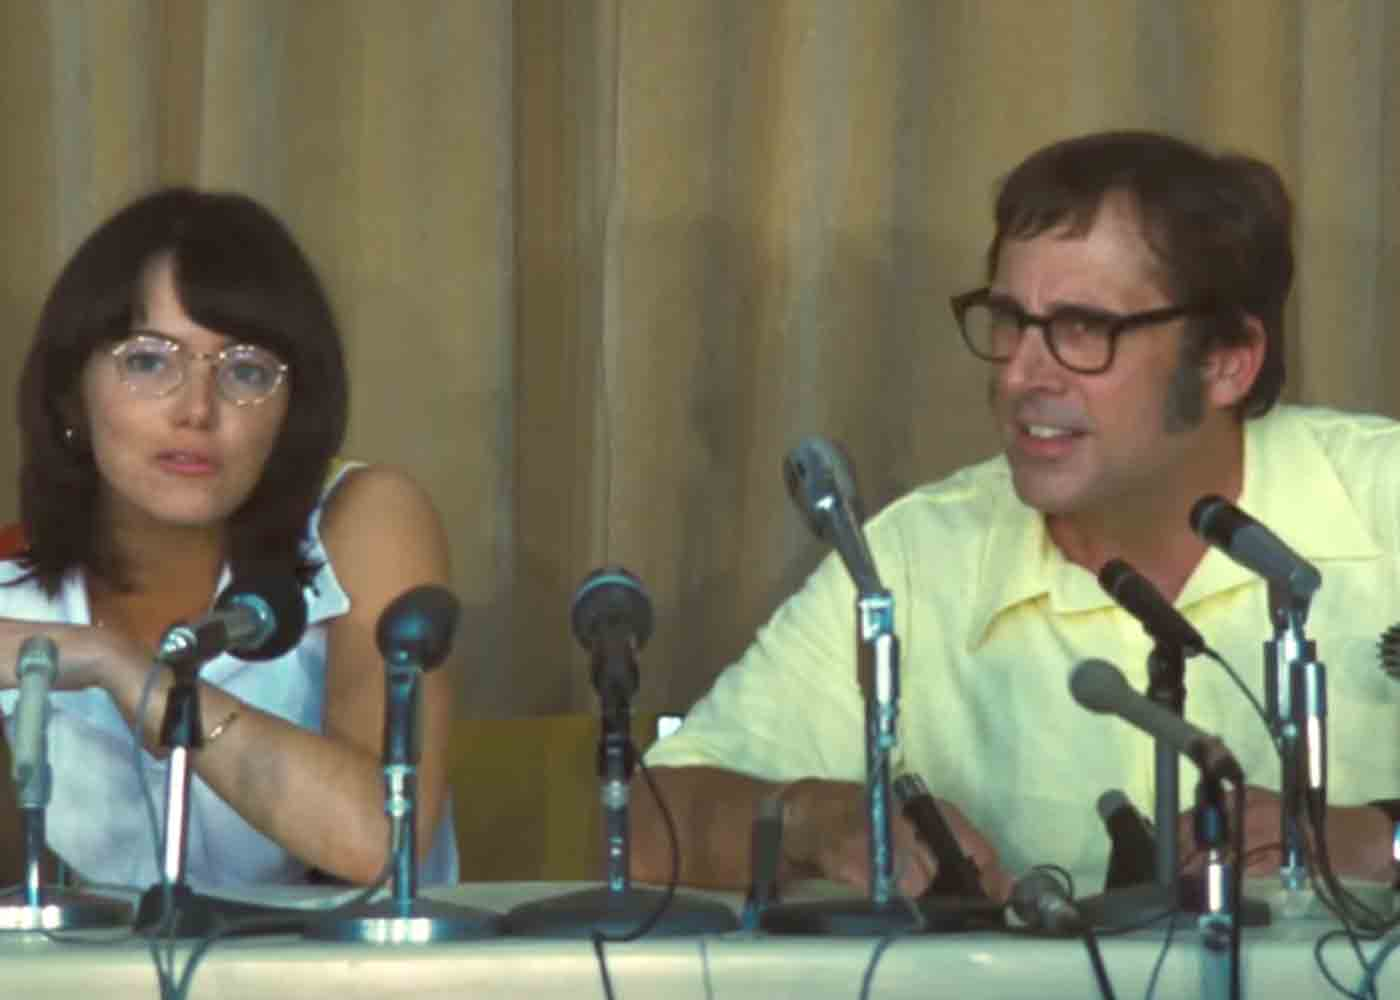 New Trailer for Battle of the Sexes, Starring Emma Stone & Steve Carell